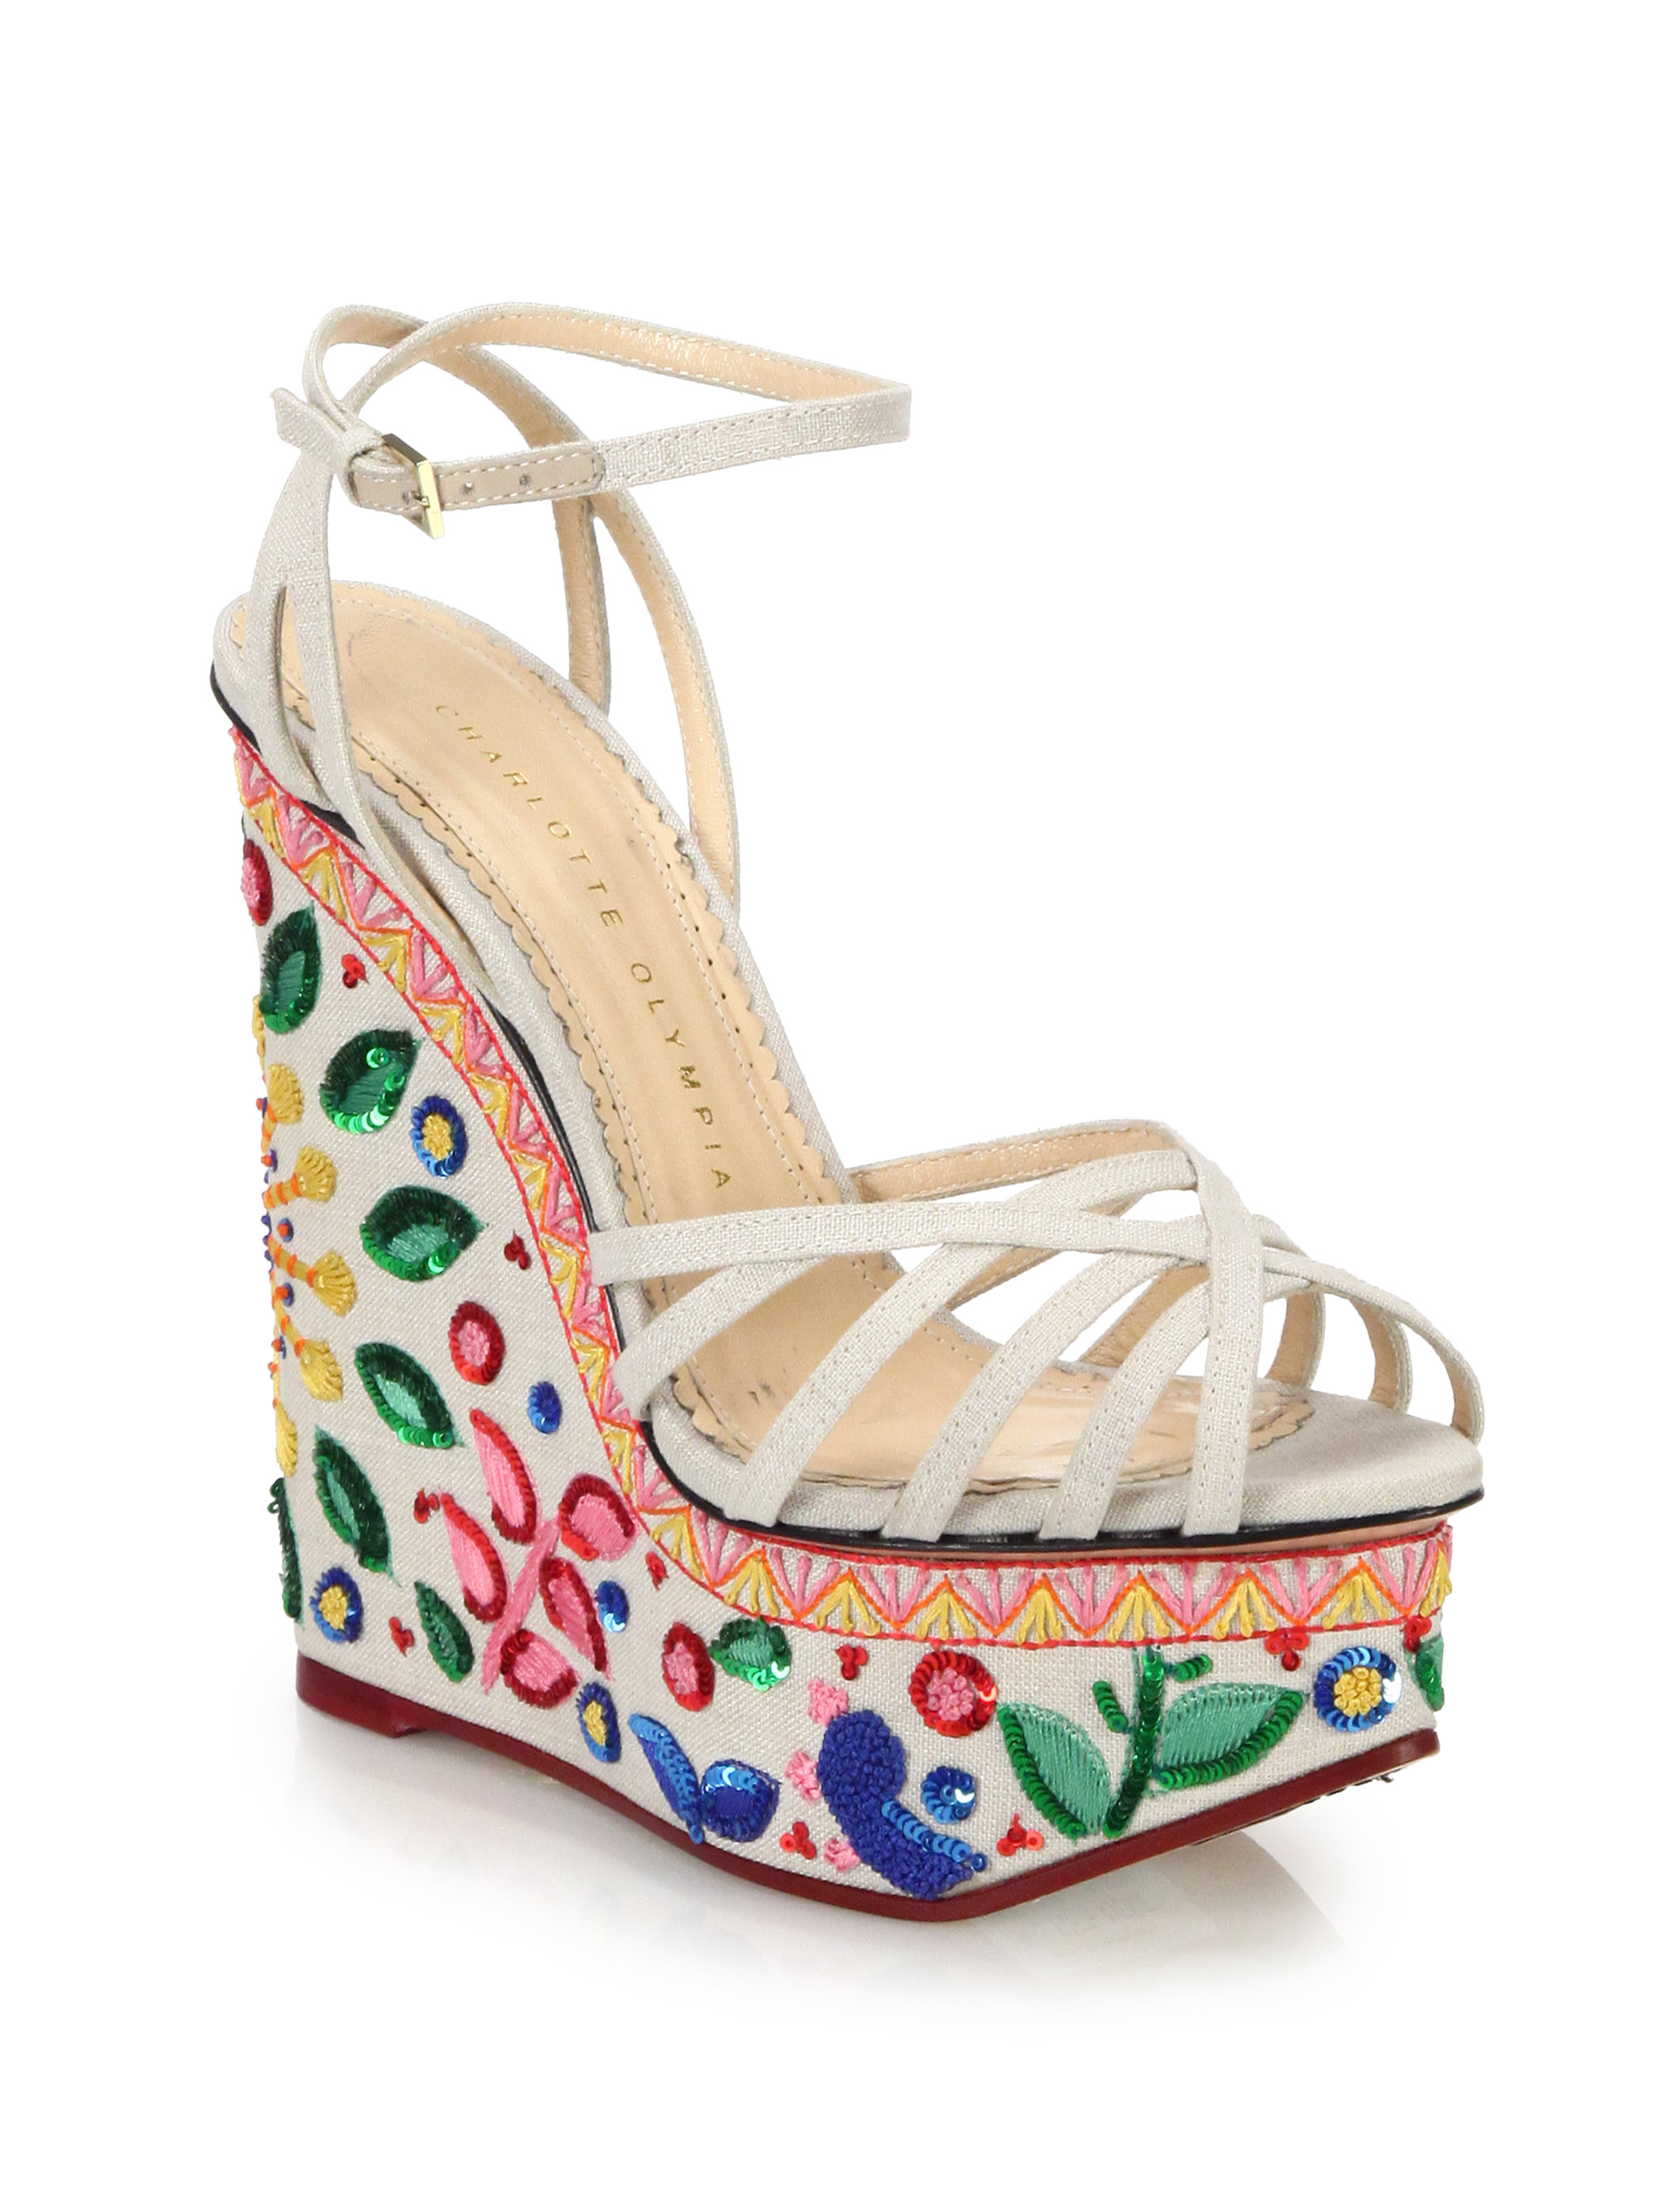 c901302f1f87 Lyst - Charlotte Olympia Celebration Meredith Sequined   Embroidered ...